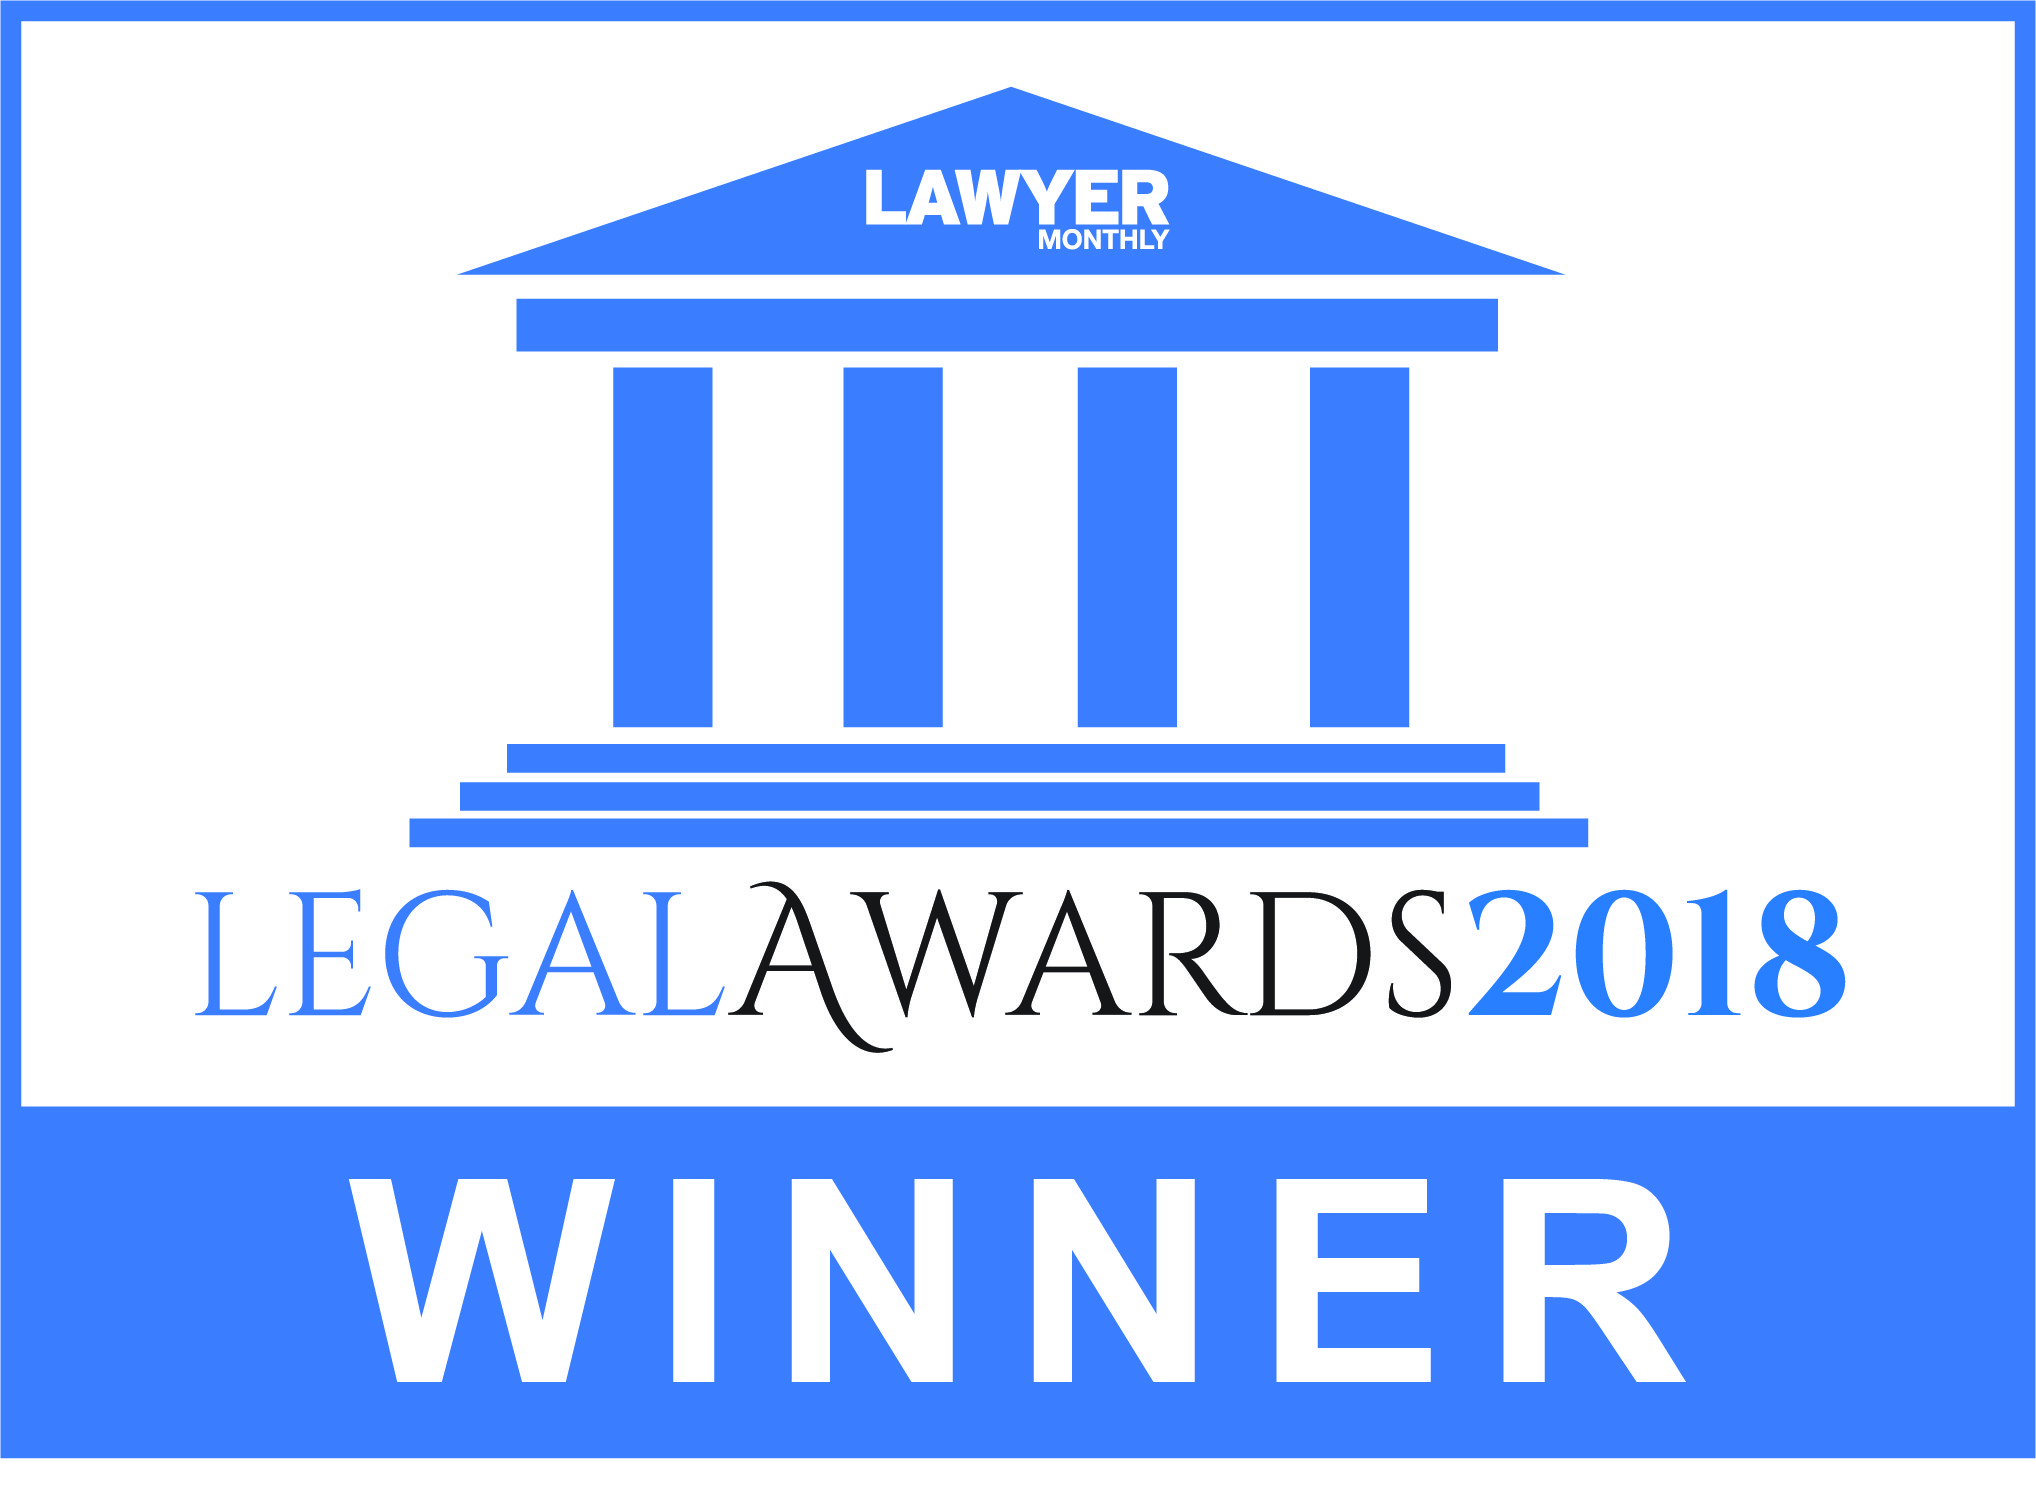 legal award winner logo